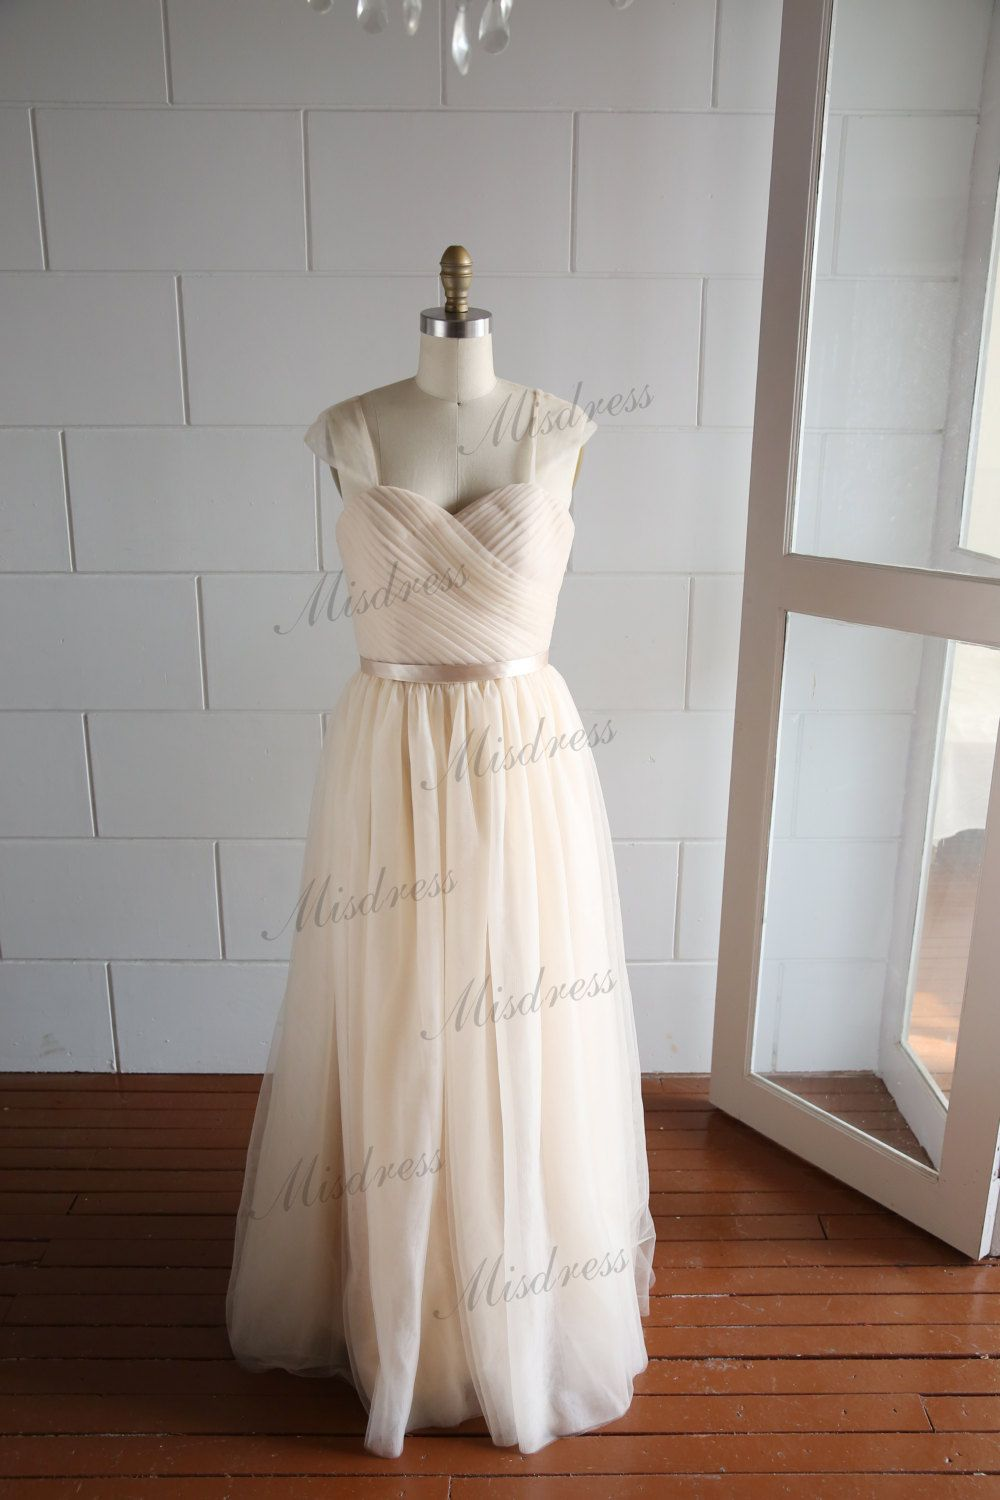 Cap sleeves champagne tulle wedding dresslong by misdress on etsy